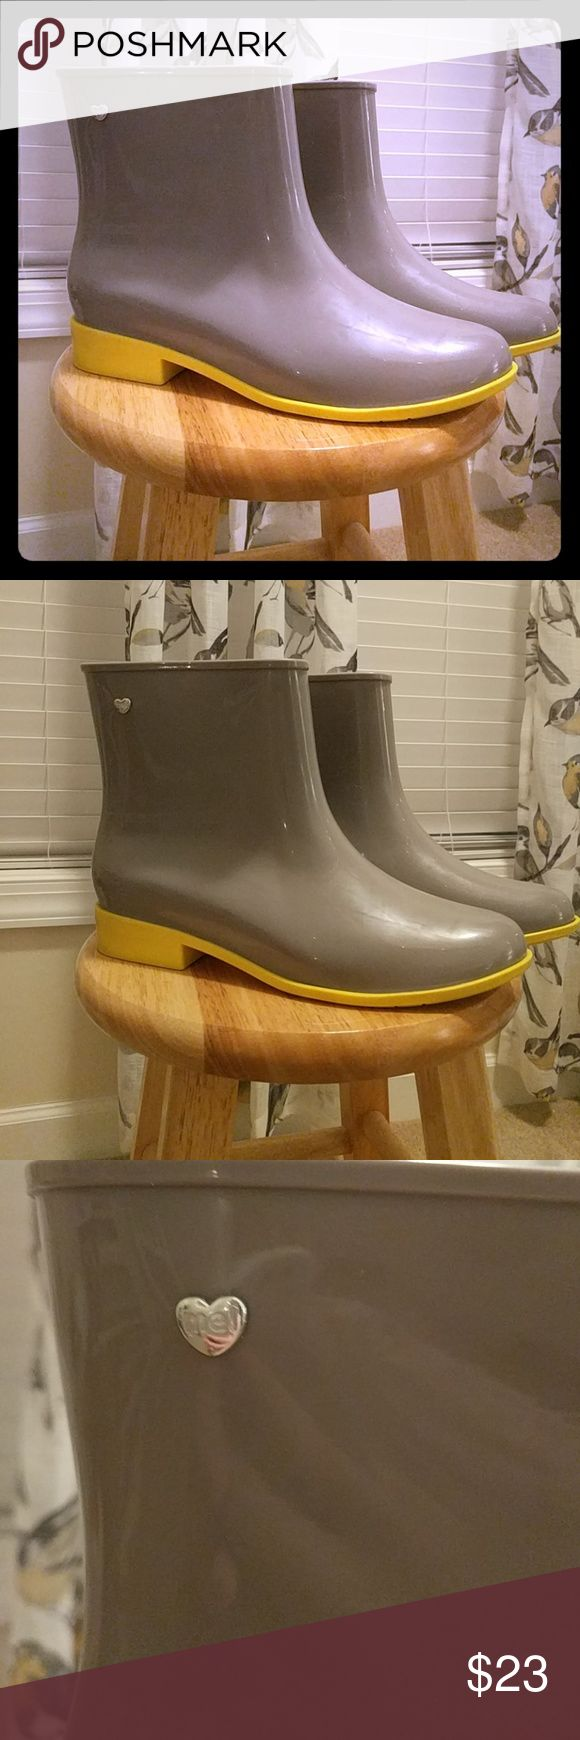 Mel grey and yellow ankle rain boots SALE!! Mel brand Women's grey and yellow ankle height rain boots, size 10  Lightly worn ( see photos) Super cute and perfect for spring rain showers!   Bundle and save! Mel by Melissa Shoes Winter & Rain Boots